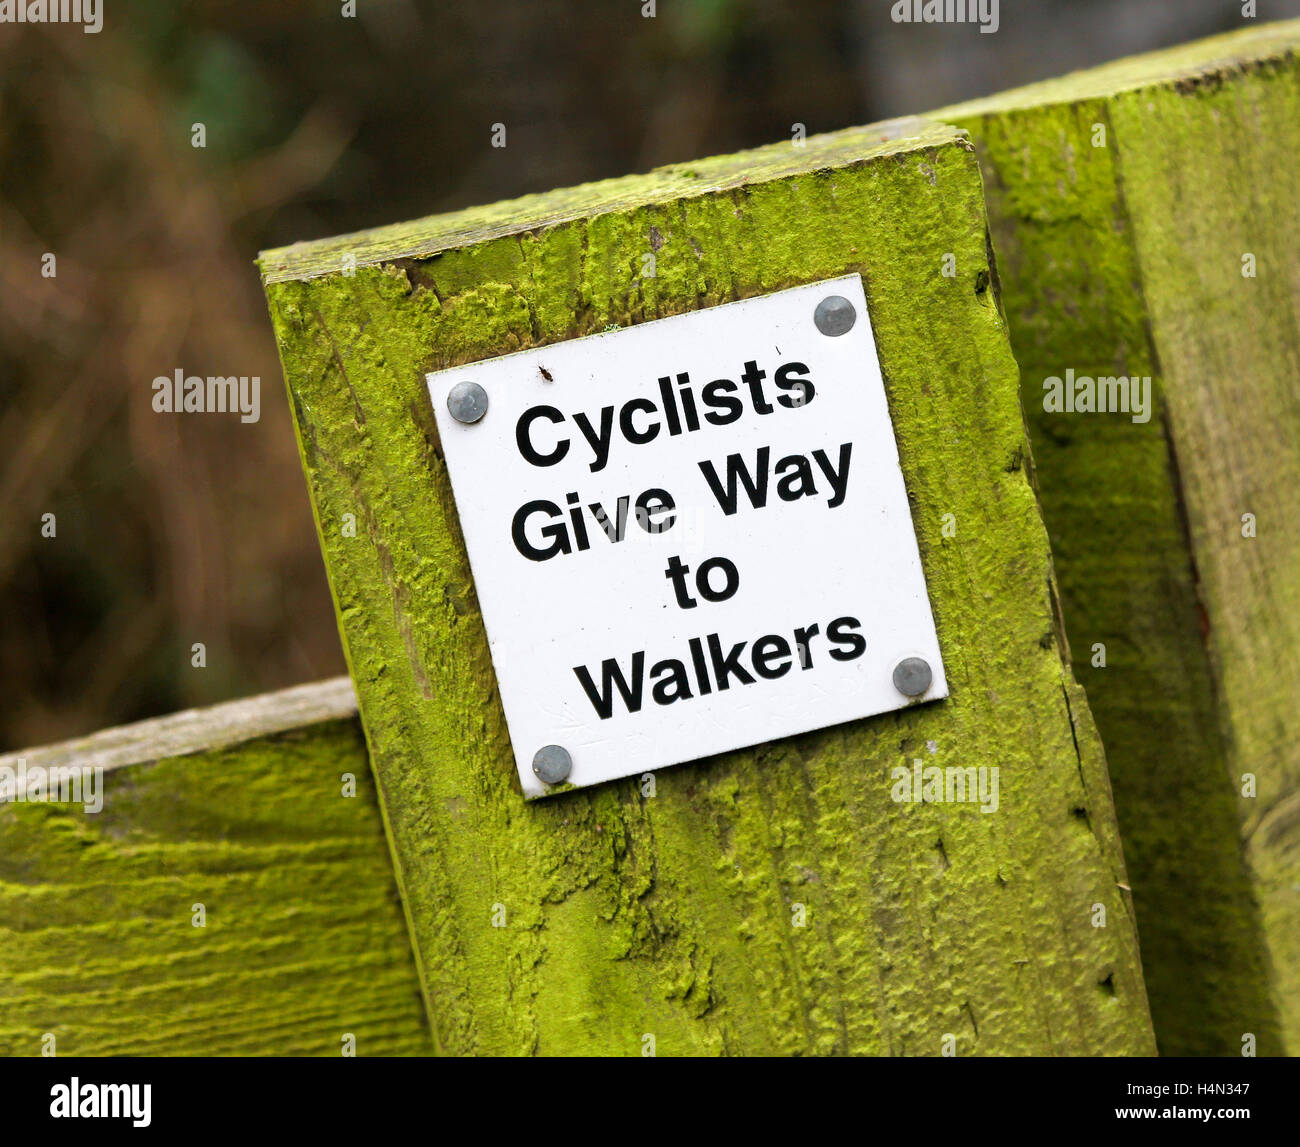 A sign saying Cyclists give way to walkers on a wooden post - Stock Image